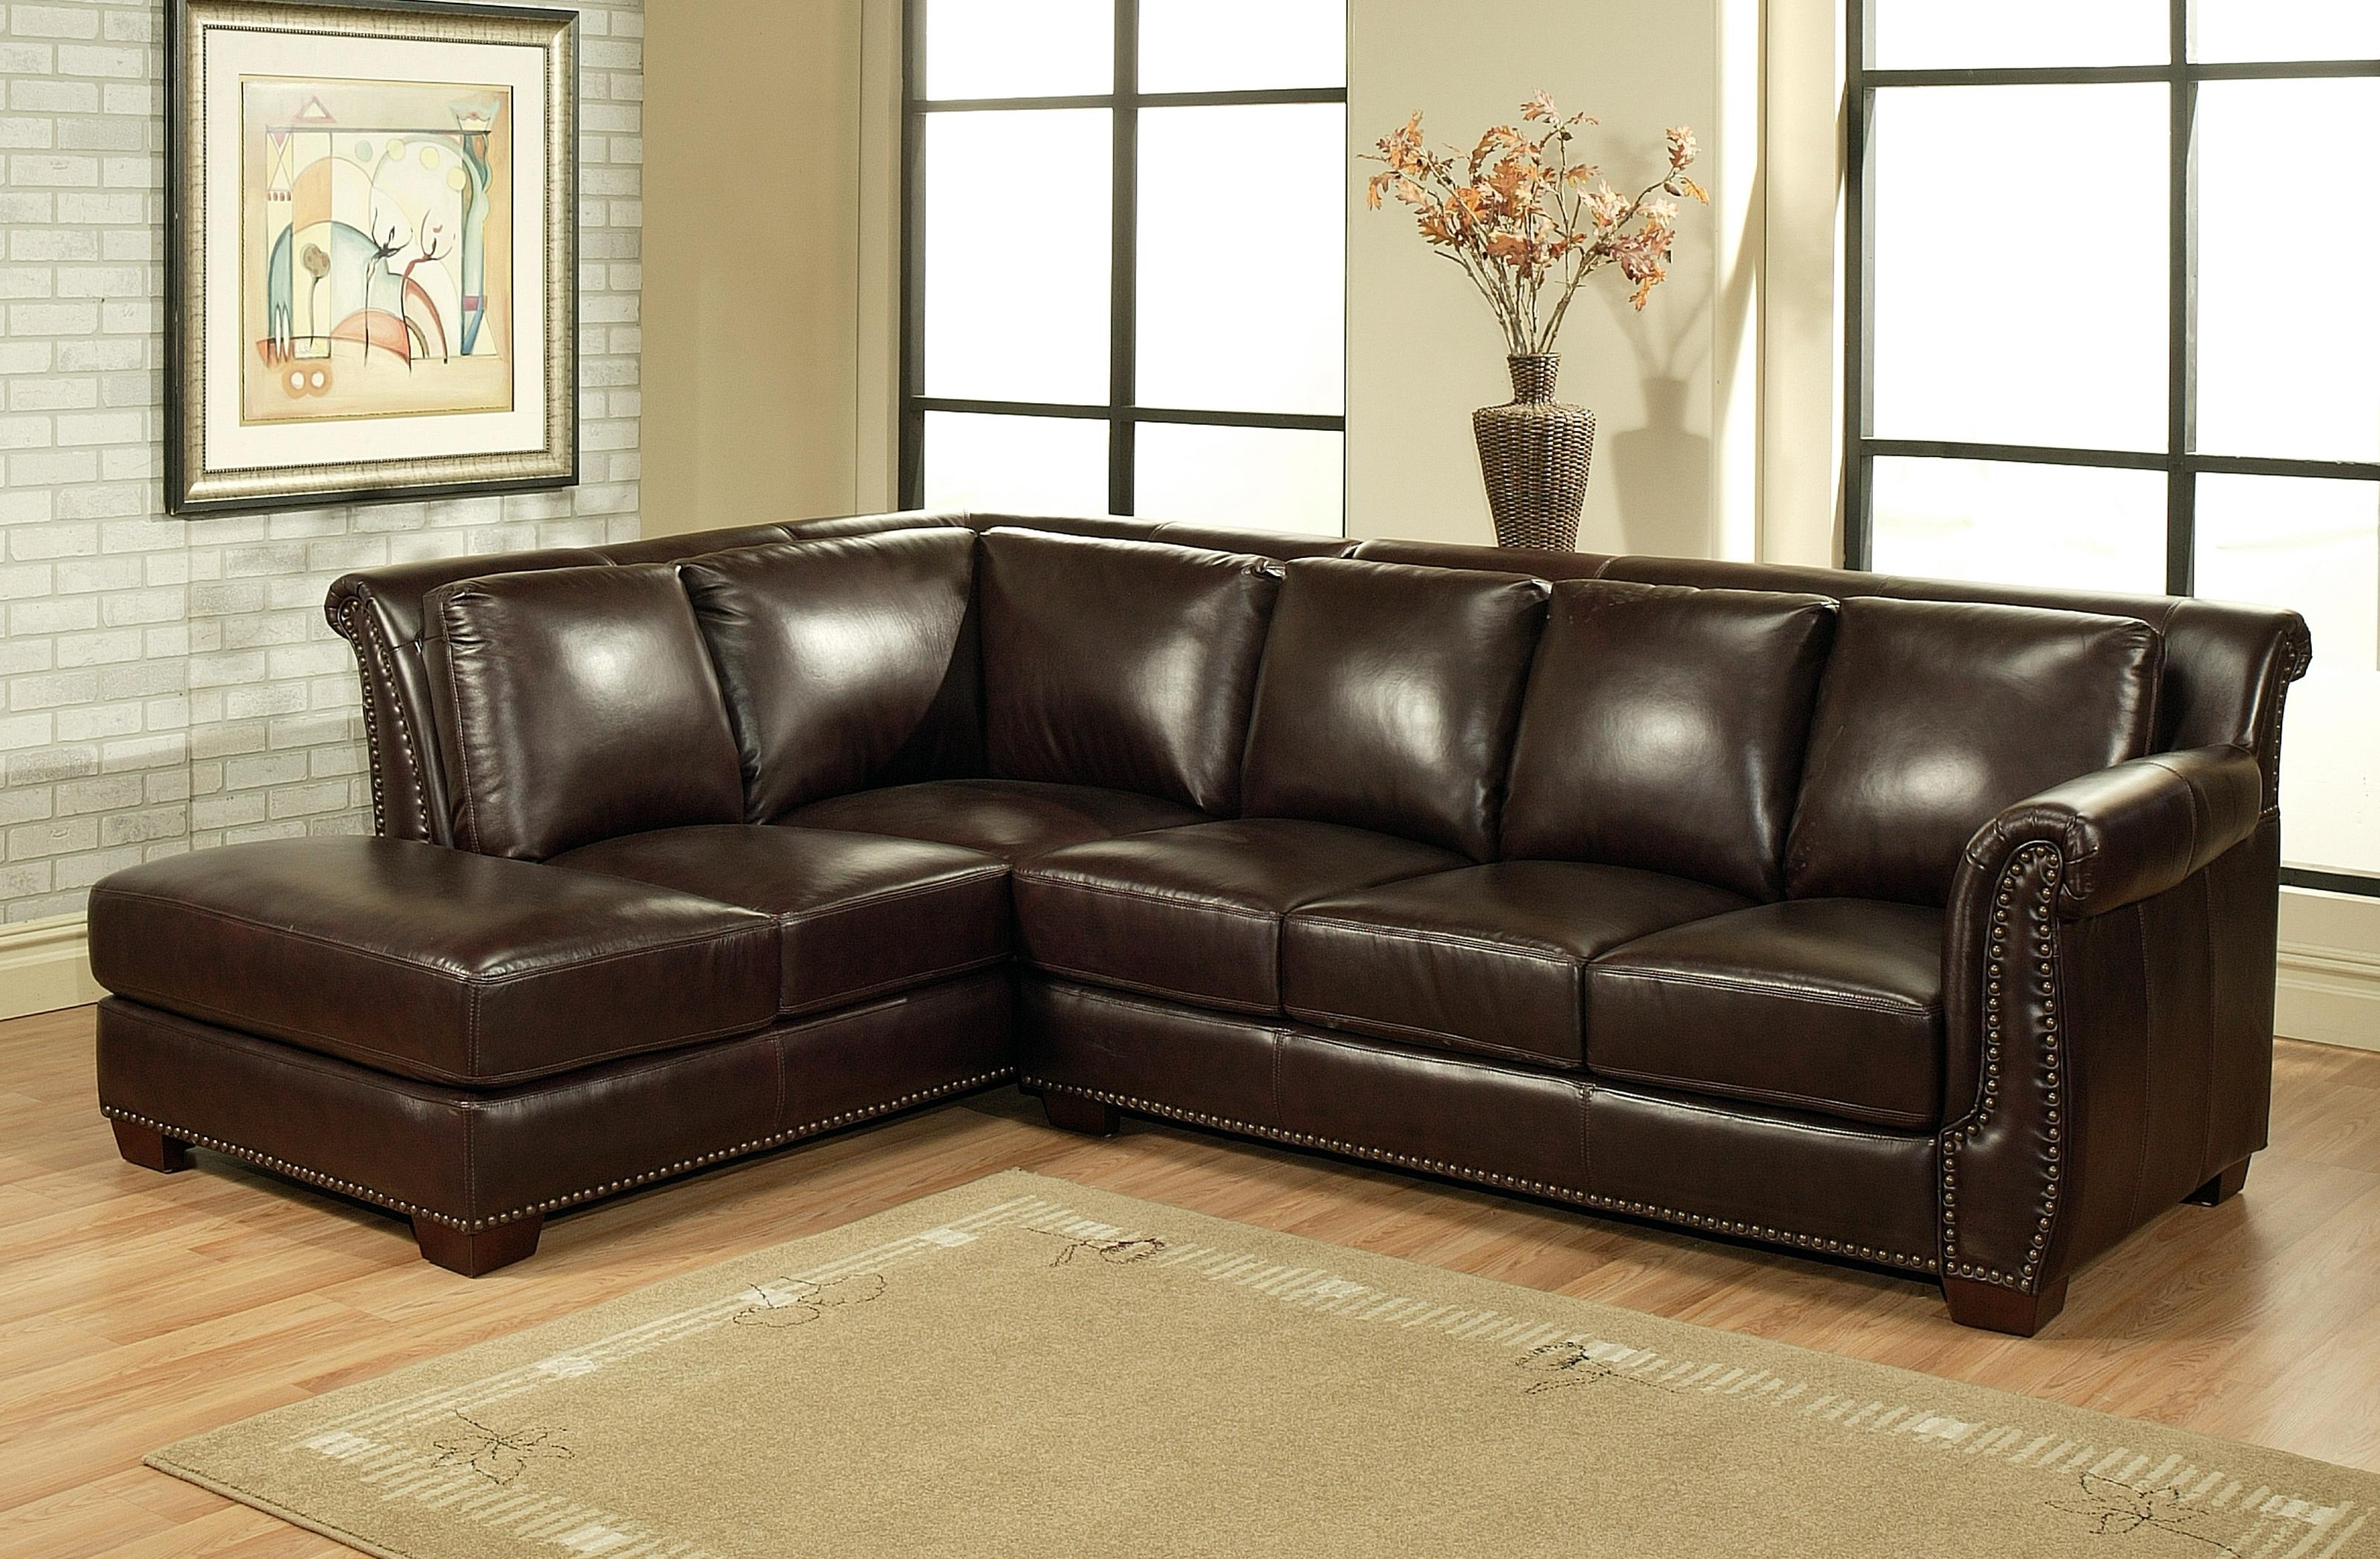 Newest Leather L Shaped Sectional Sofas In Ikea Couch Bed U Shaped Sectional Costco Leather Recliner Large (View 16 of 20)